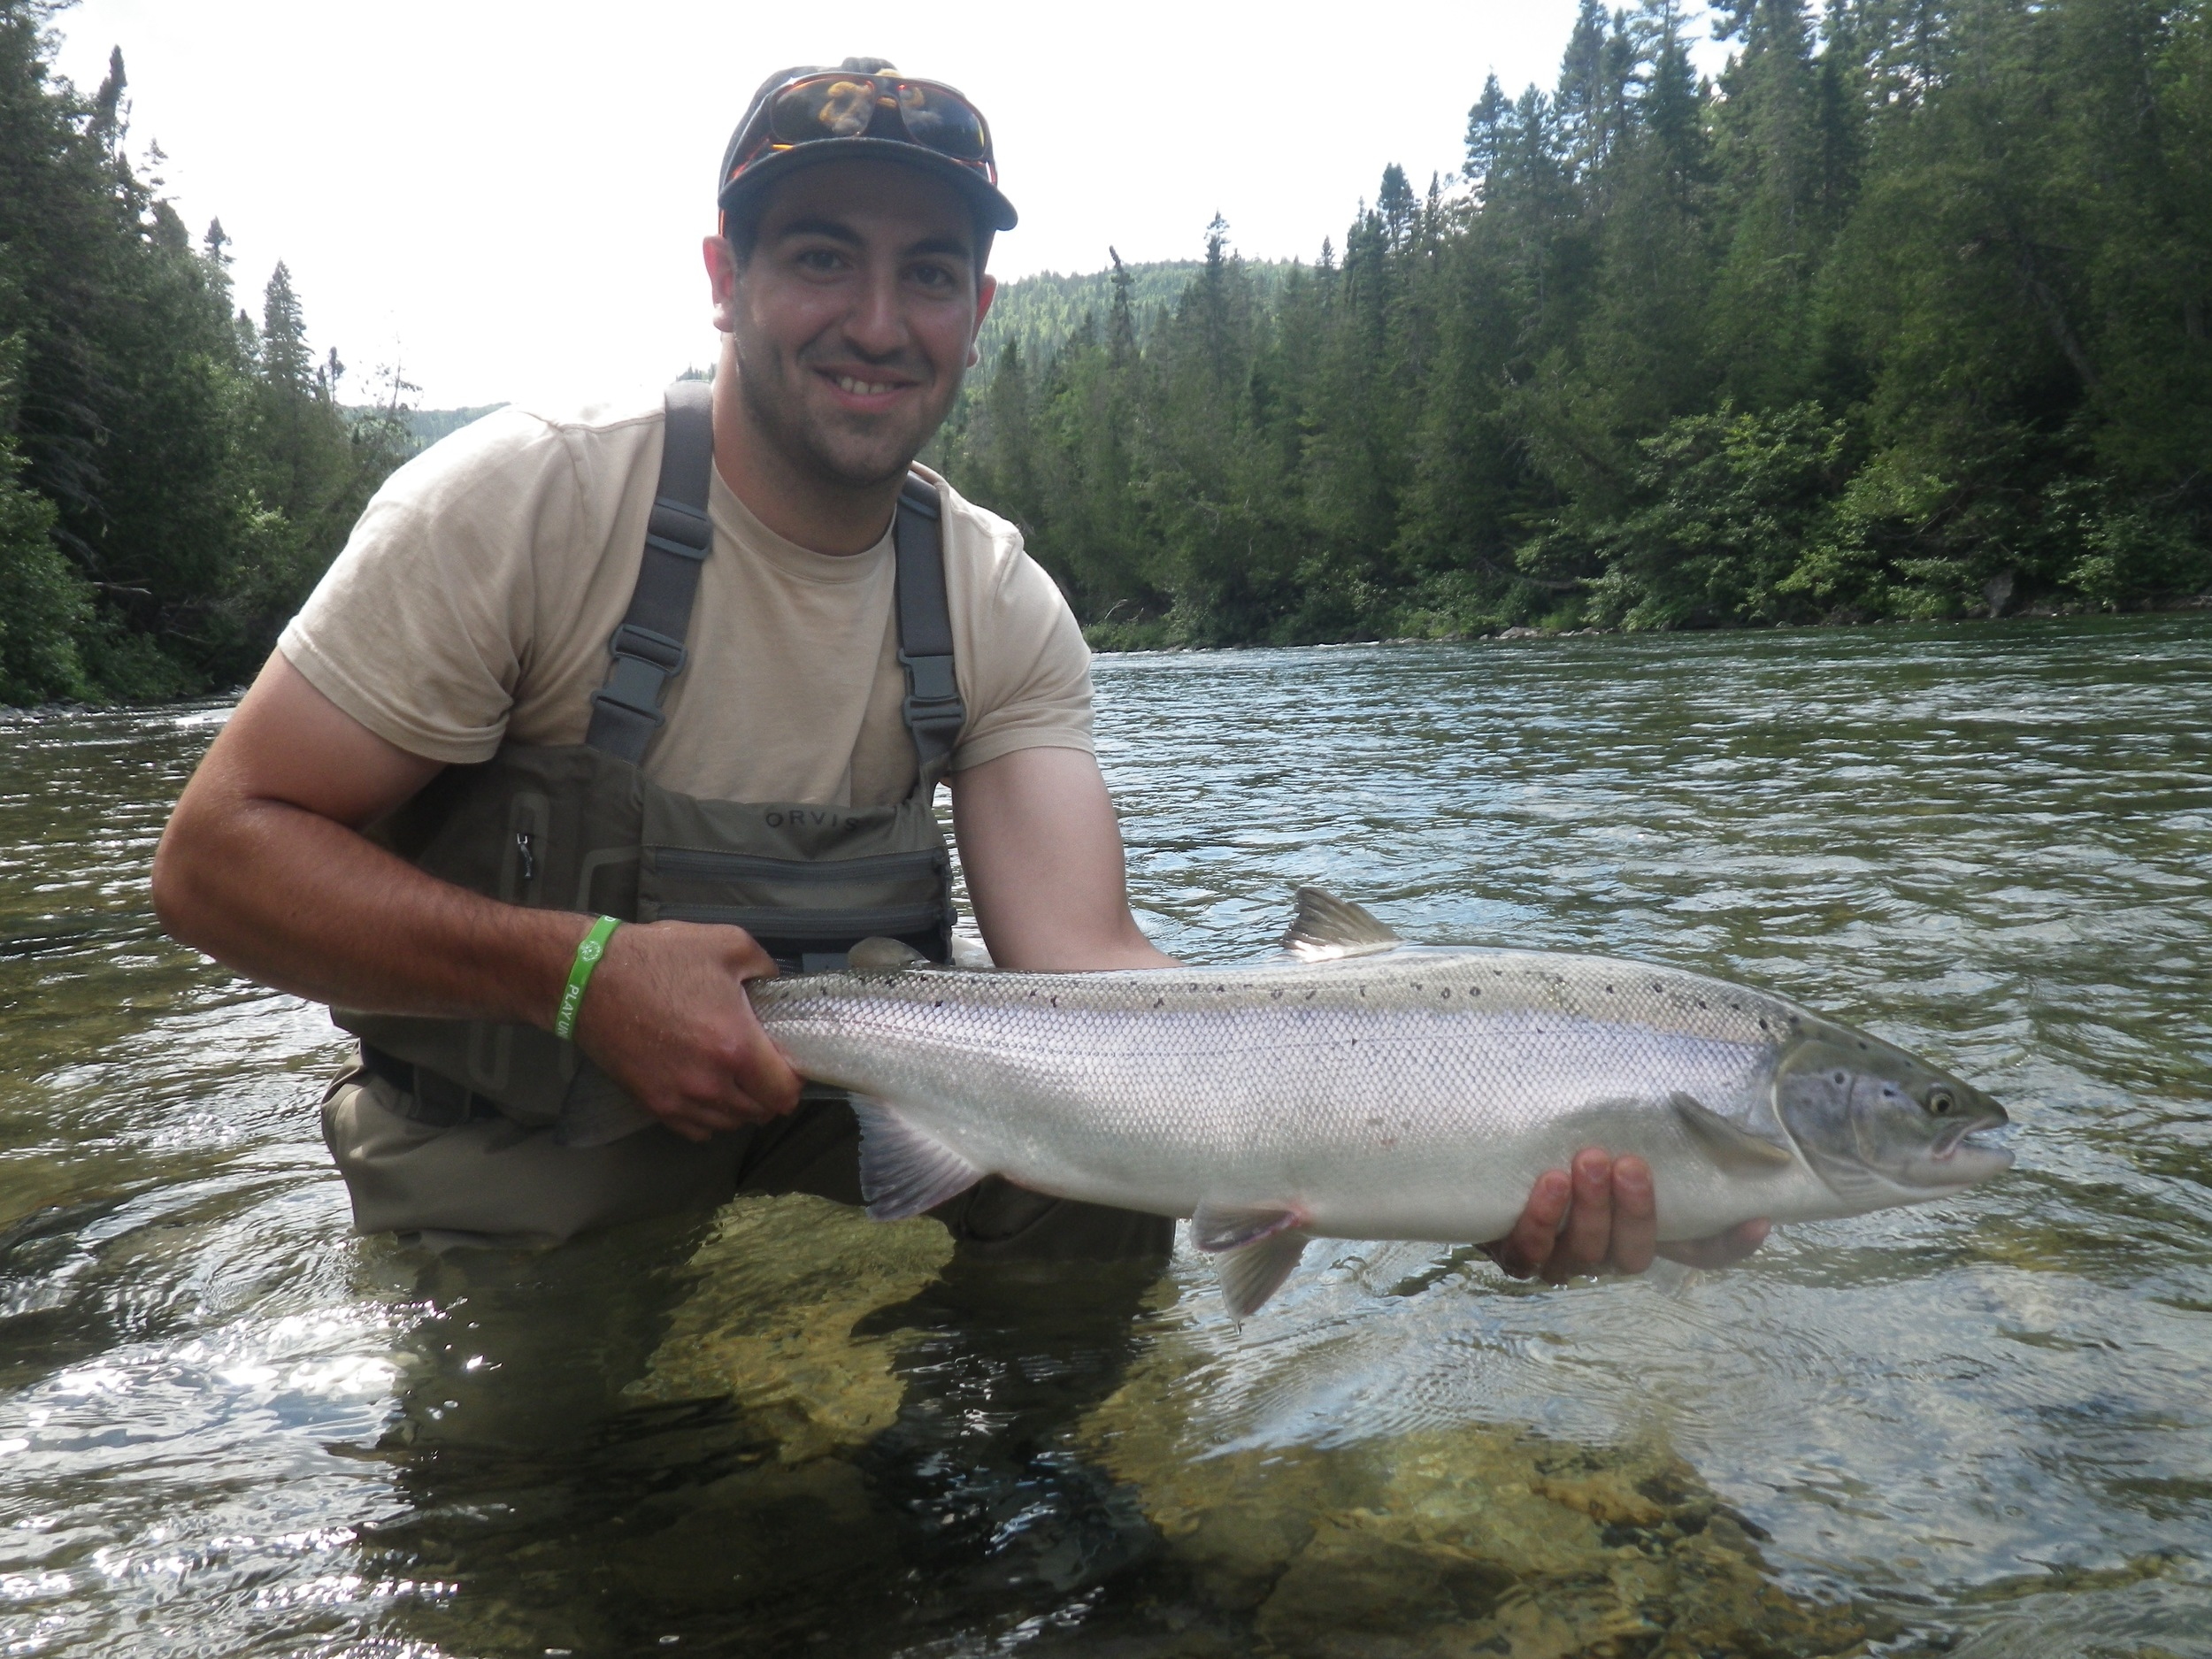 Jake Porcello with his first Atlantic Salmon salmon, great fish Jake!